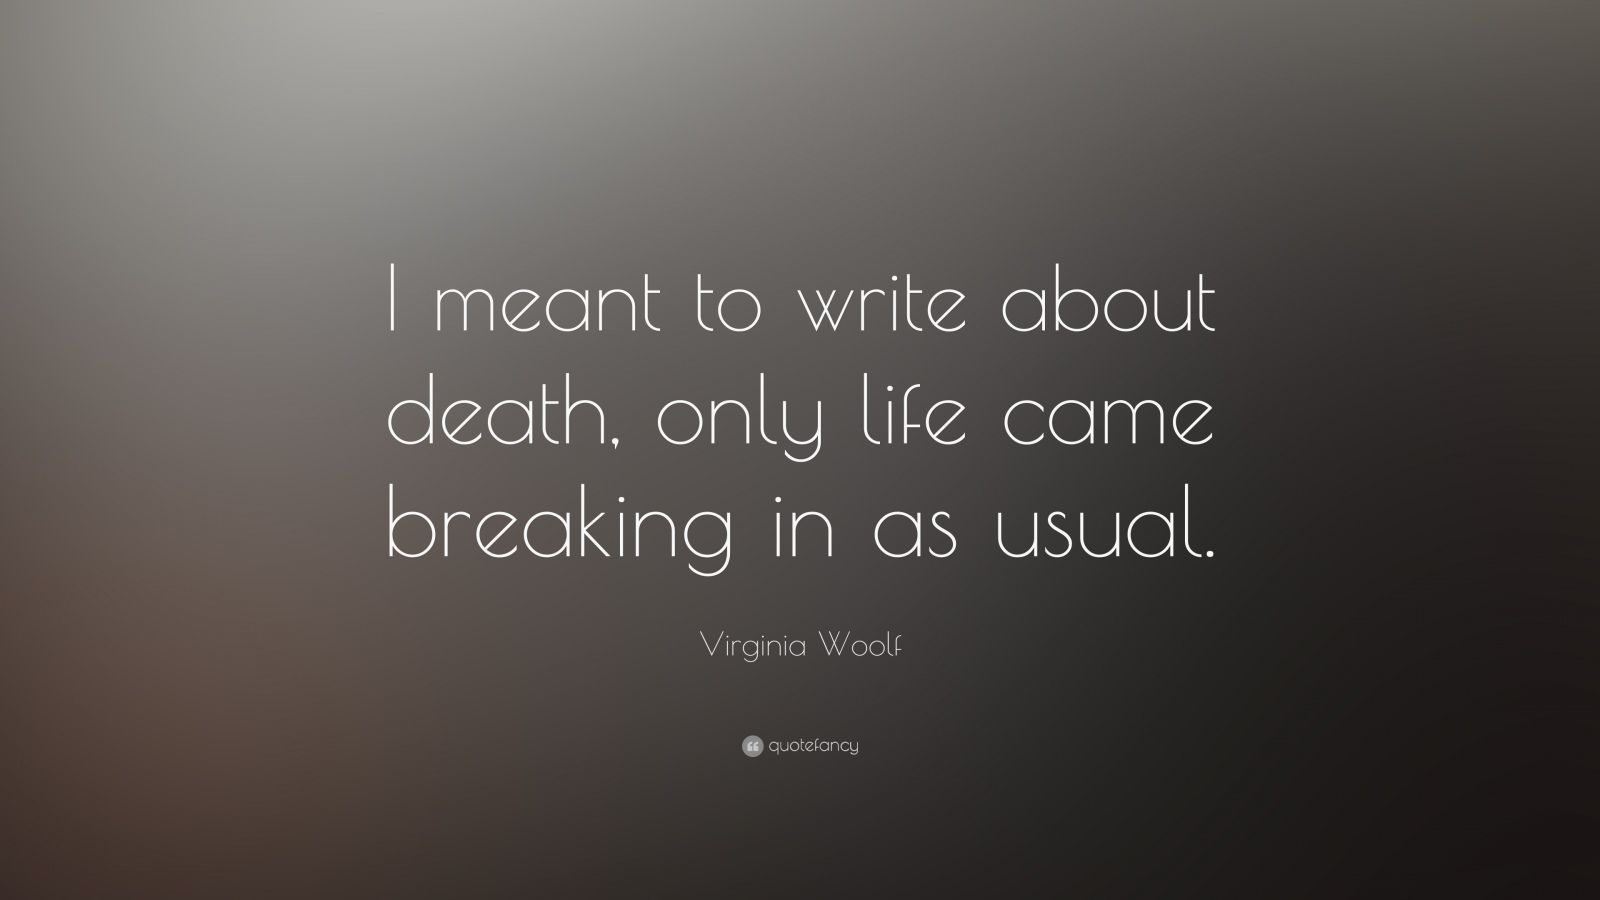 how to write about death